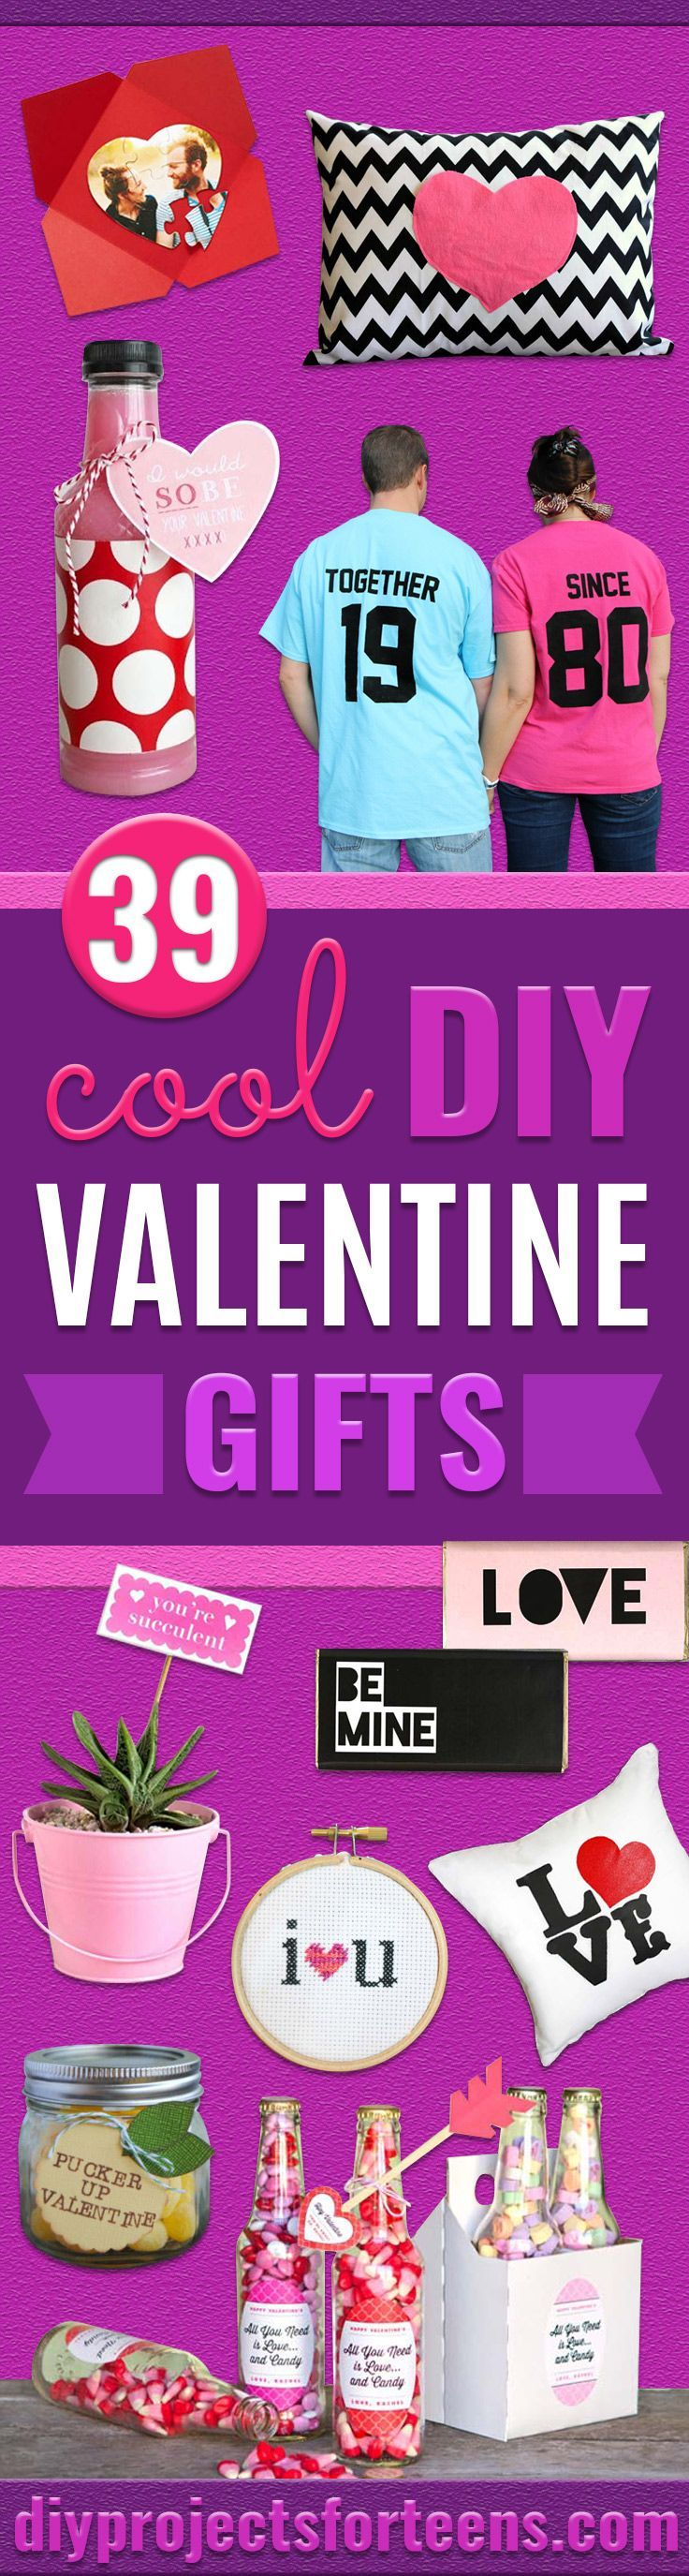 DIY Valentine Gifts - Gifts for Her and Him, Teens, Teenagers and Tweens - Mason Jar Ideas, Homemade Cards, Cheap and Easy Gift Ideas for Valentine Presents http://diyprojectsforteens.com/diy-valentine-gifts